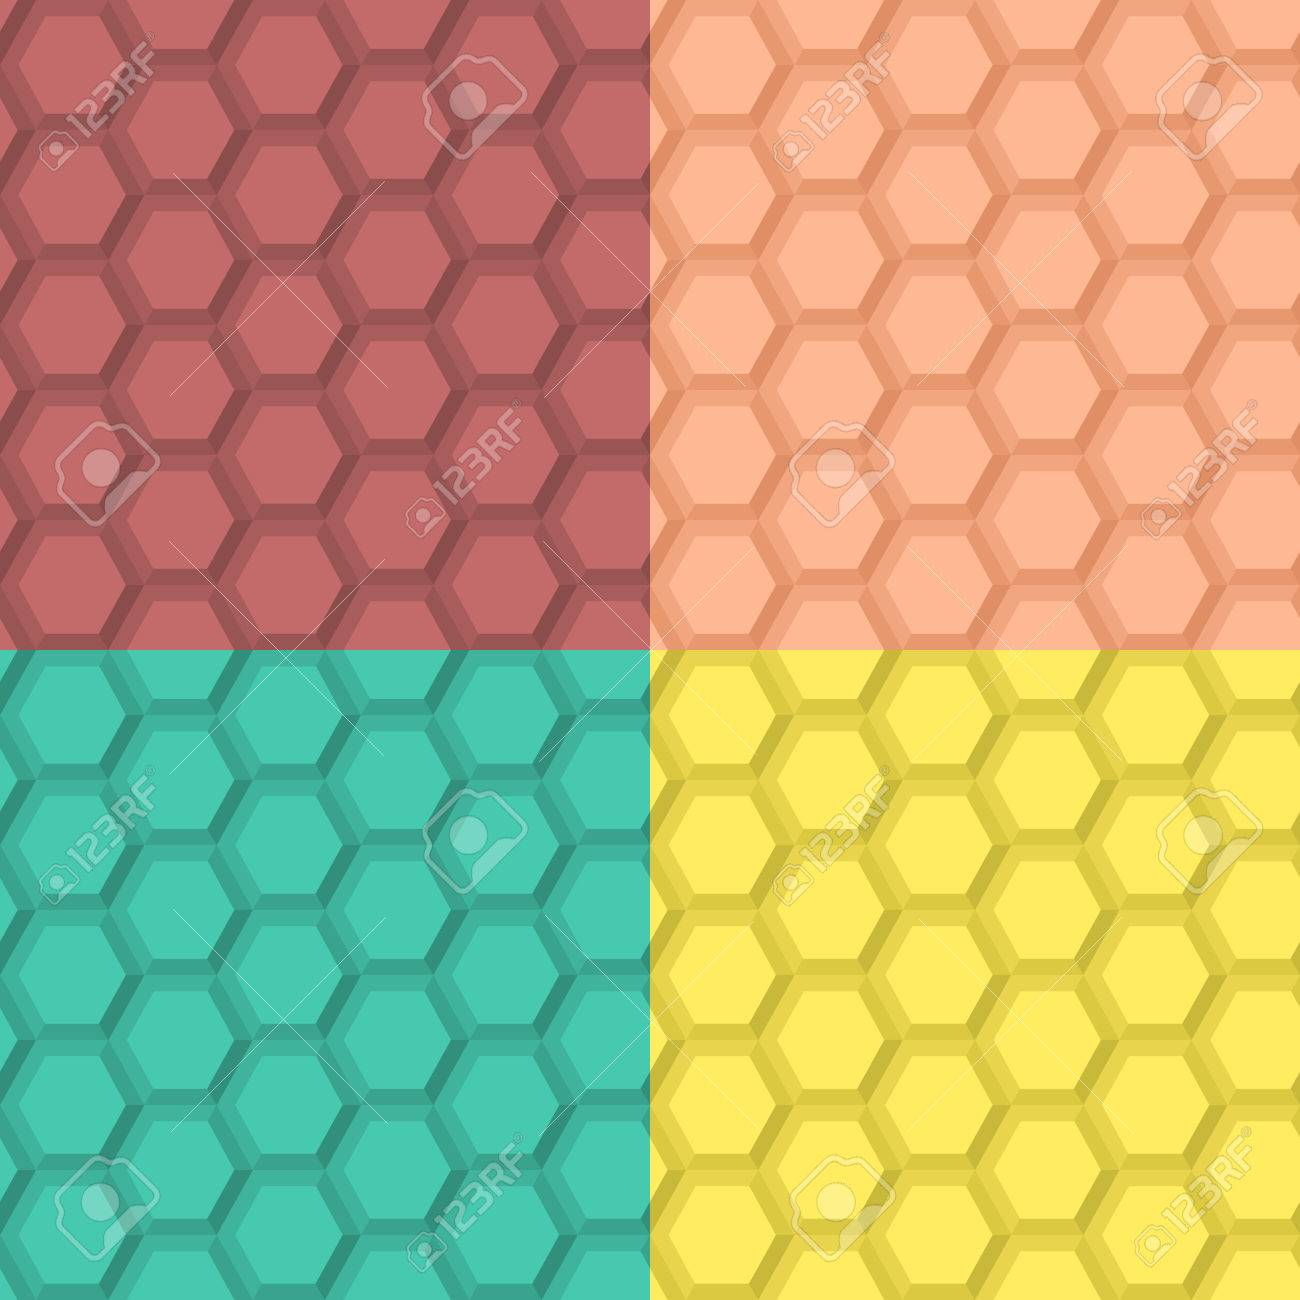 Flat Seamless Hexagonal Pattern In Four Color Combinations Stock Vector